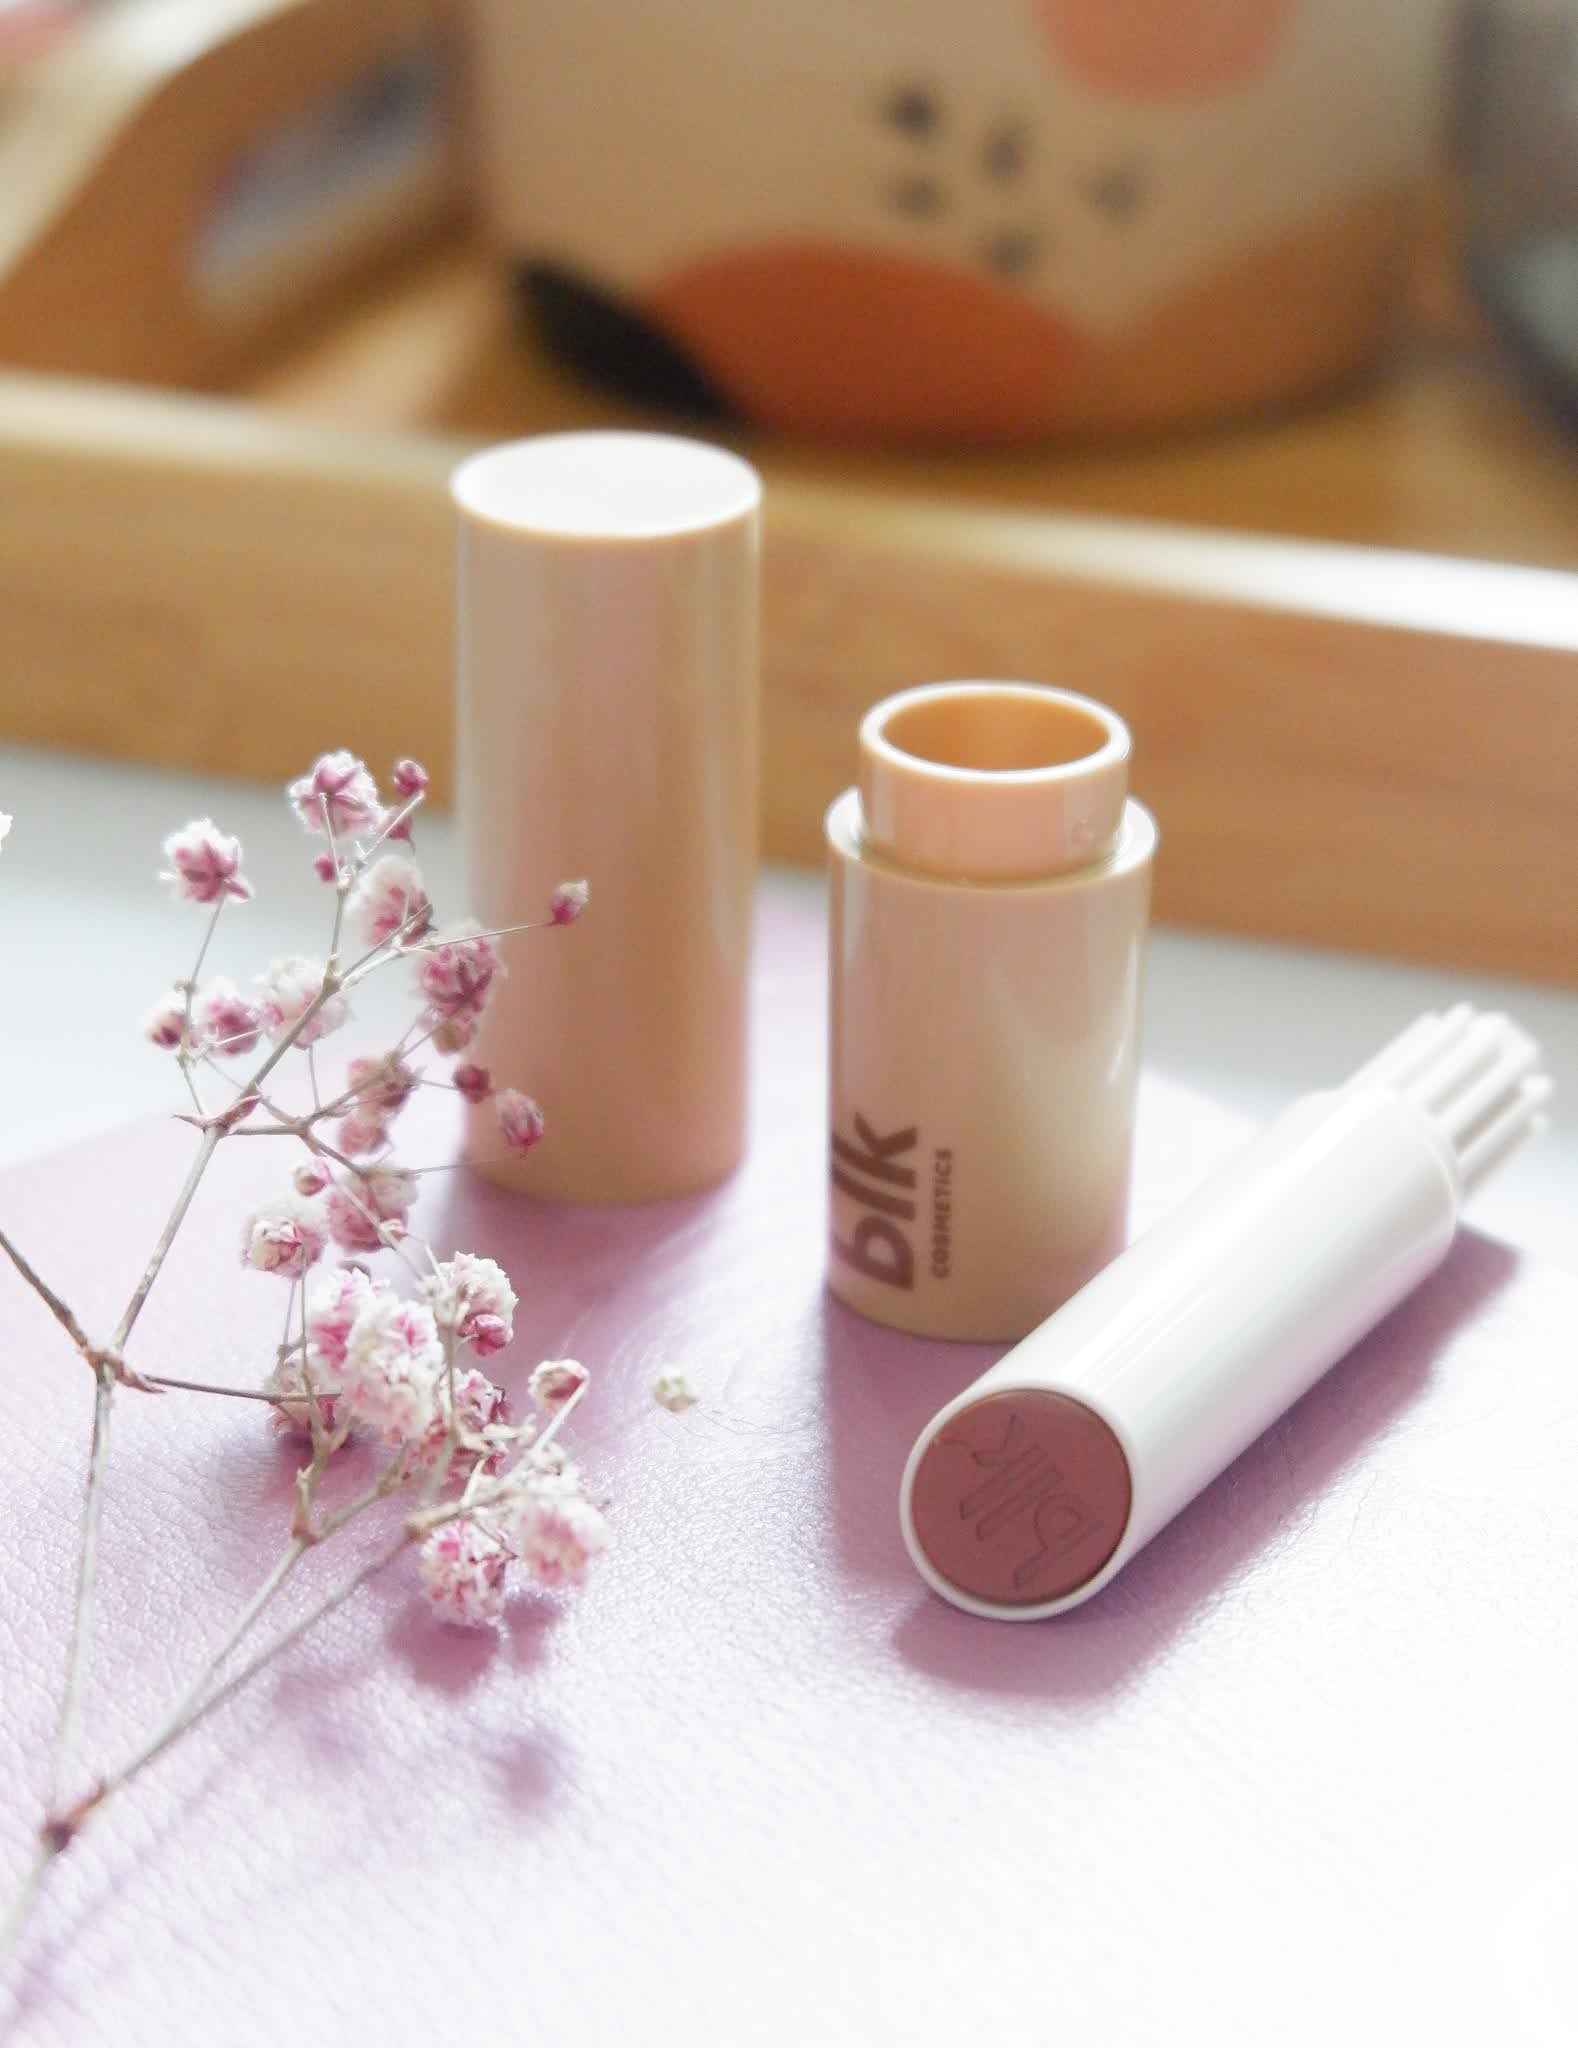 REVIEW OF BLK COSMETICS UNIVERSAL LIP SWITCH MATTE LIPPIE - ESPRESSO